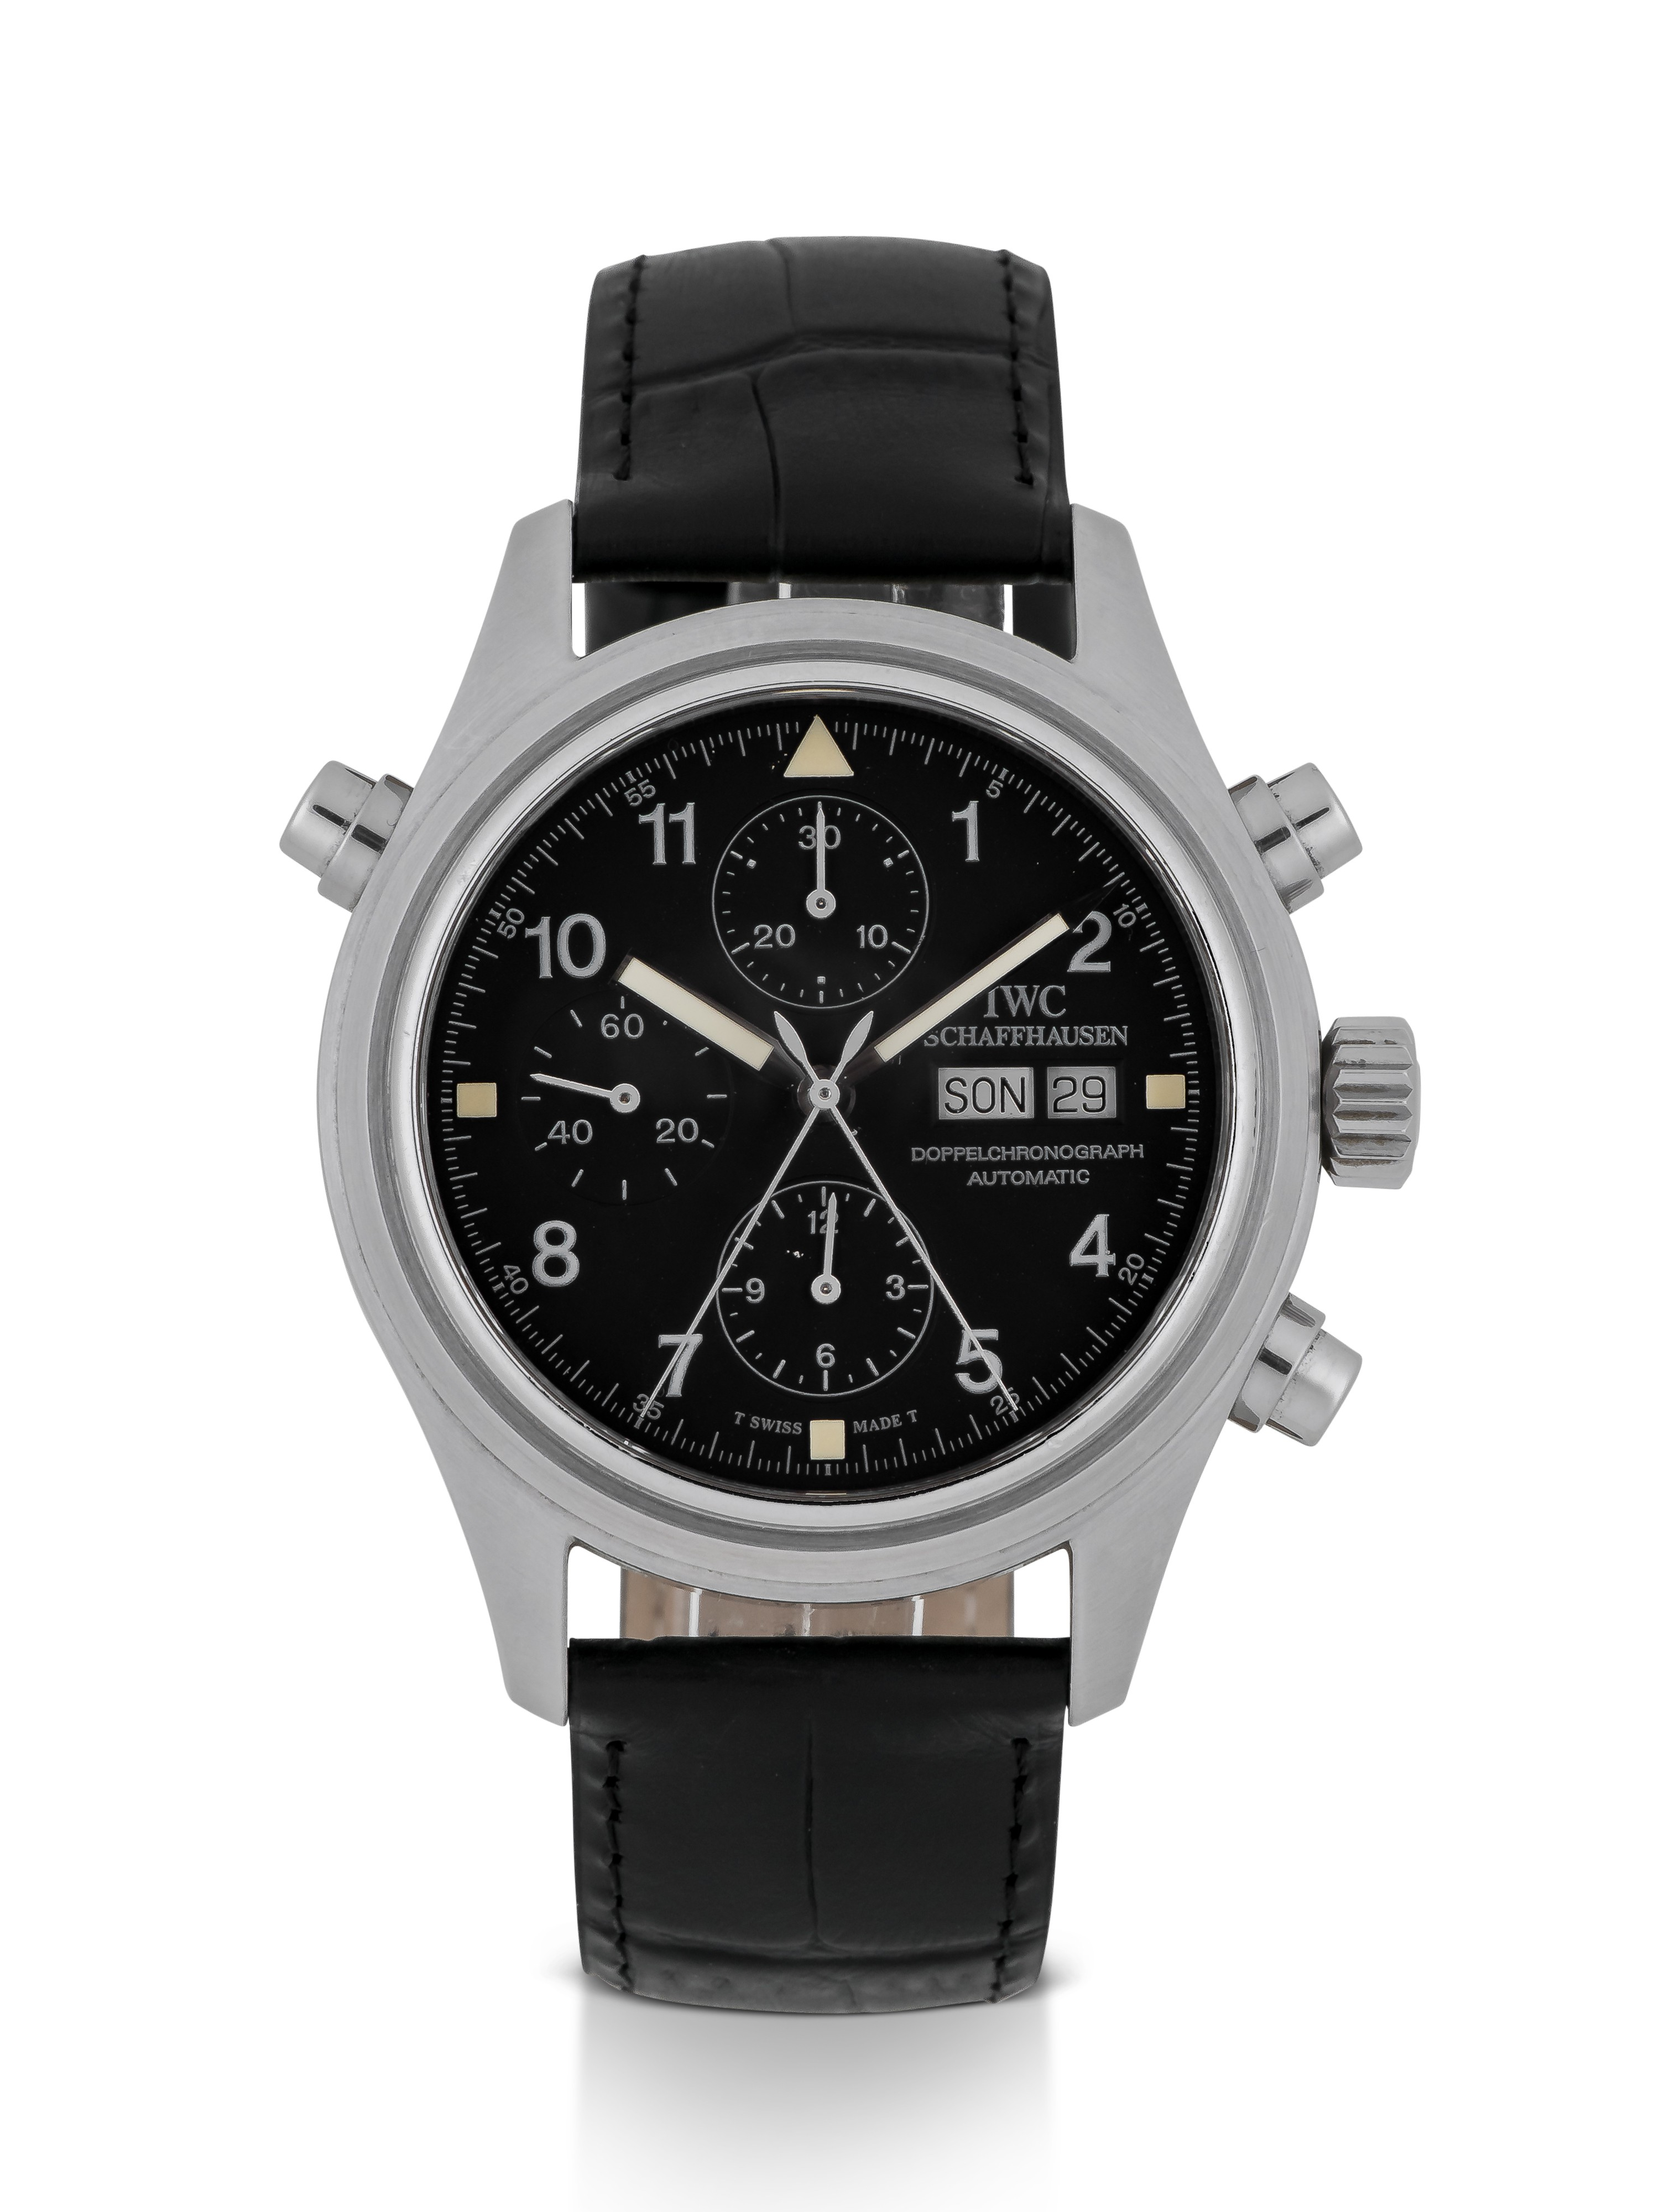 IWC | DOPPELCHRONOGRAPH, REF 3713 STAINLESS STEEL SPLIT-SECONDS CHRONOGRAPH WITH DAY AND DATE CIRCA 1999